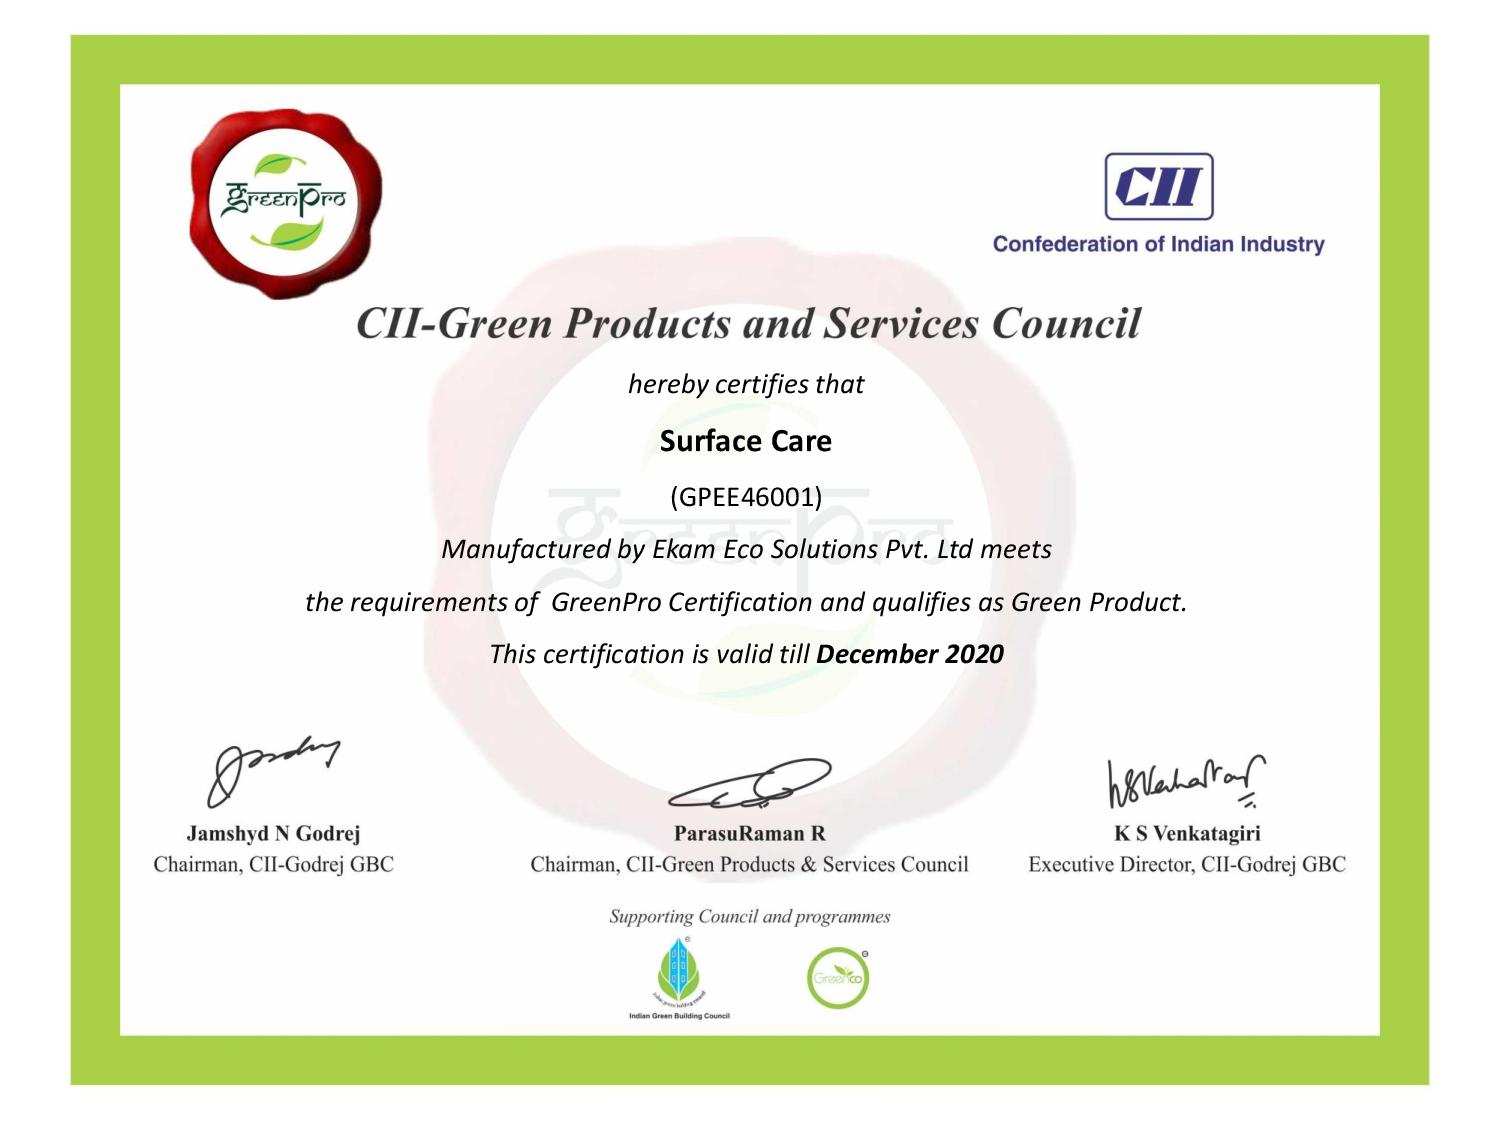 Greenpro Surface Care Certificates